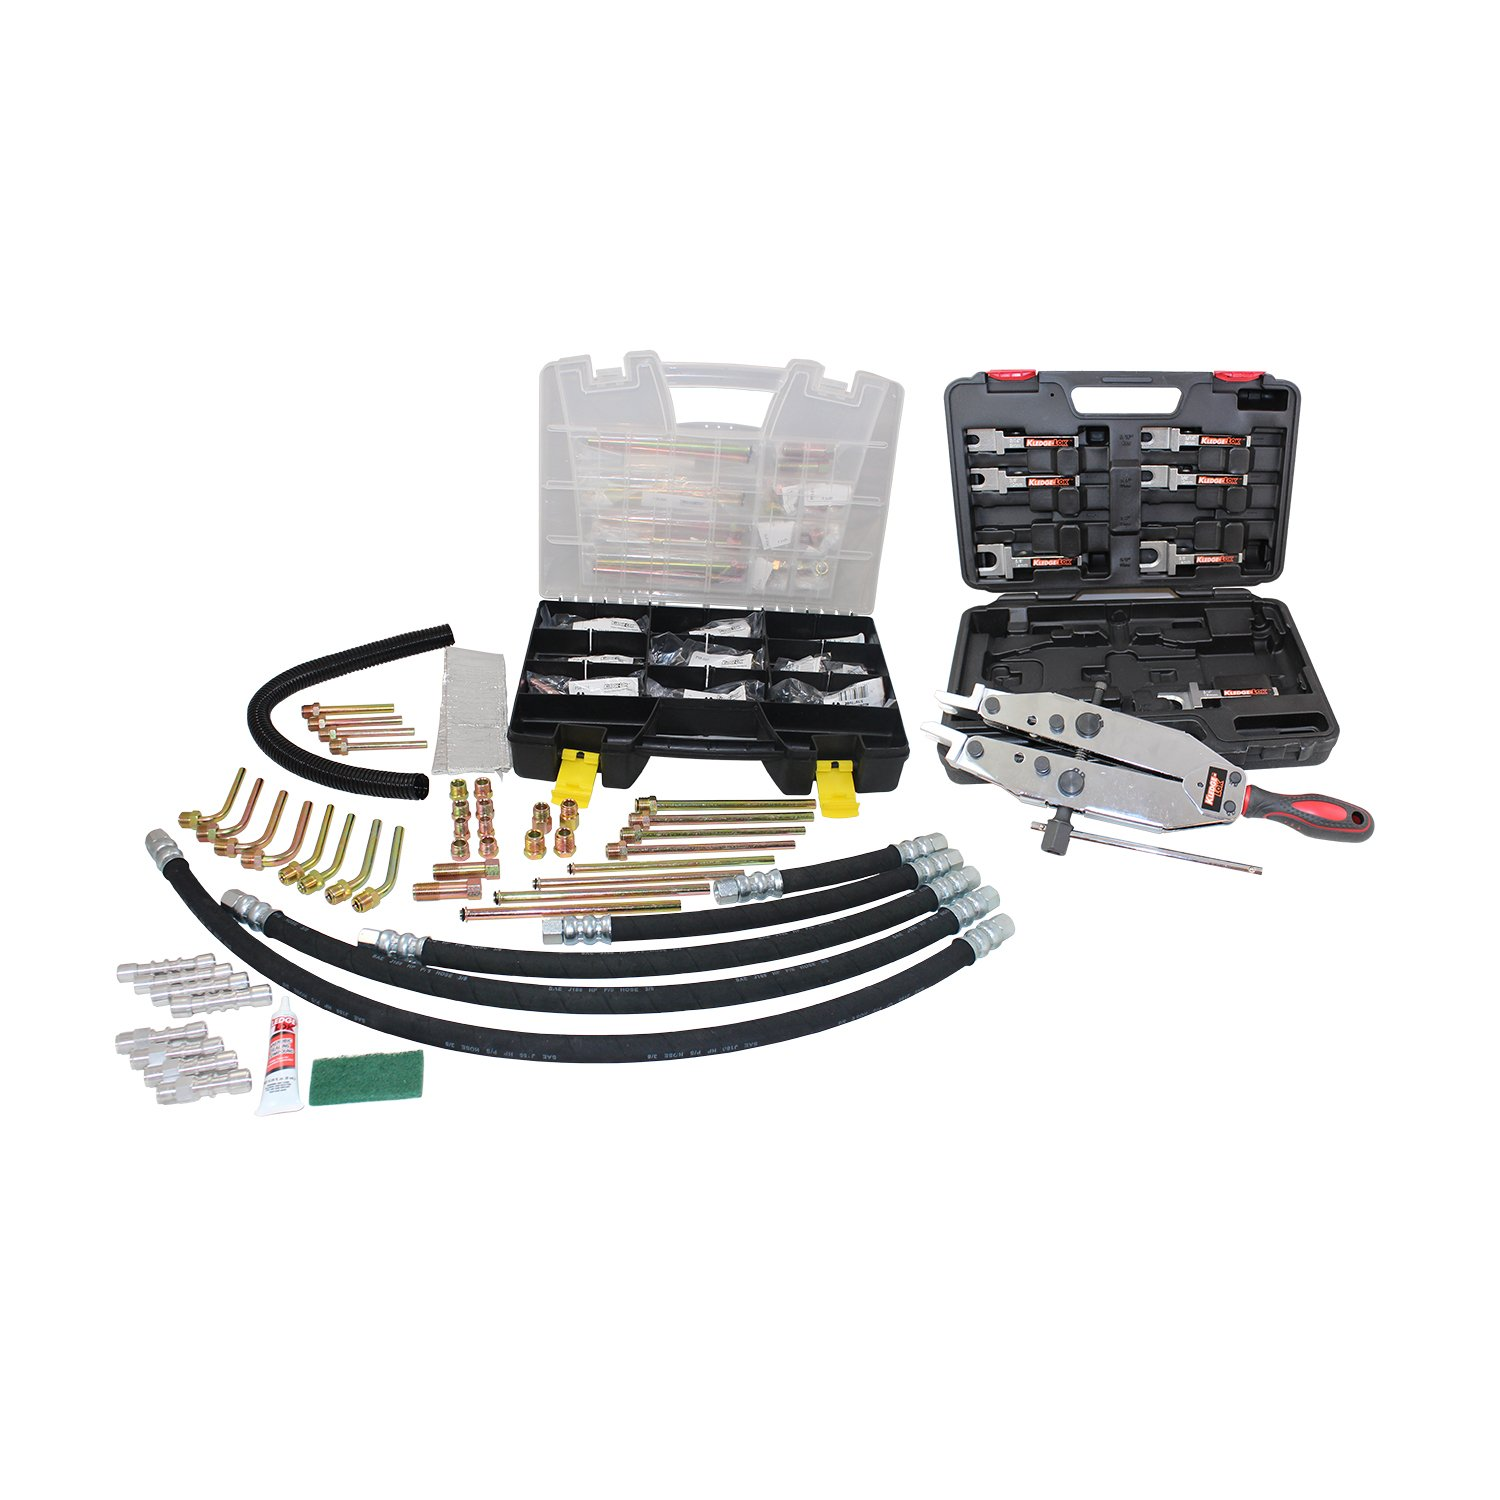 AGS Power Steering, Repair Kit, Master Kit (includes tacklebox, hoses, and tool)